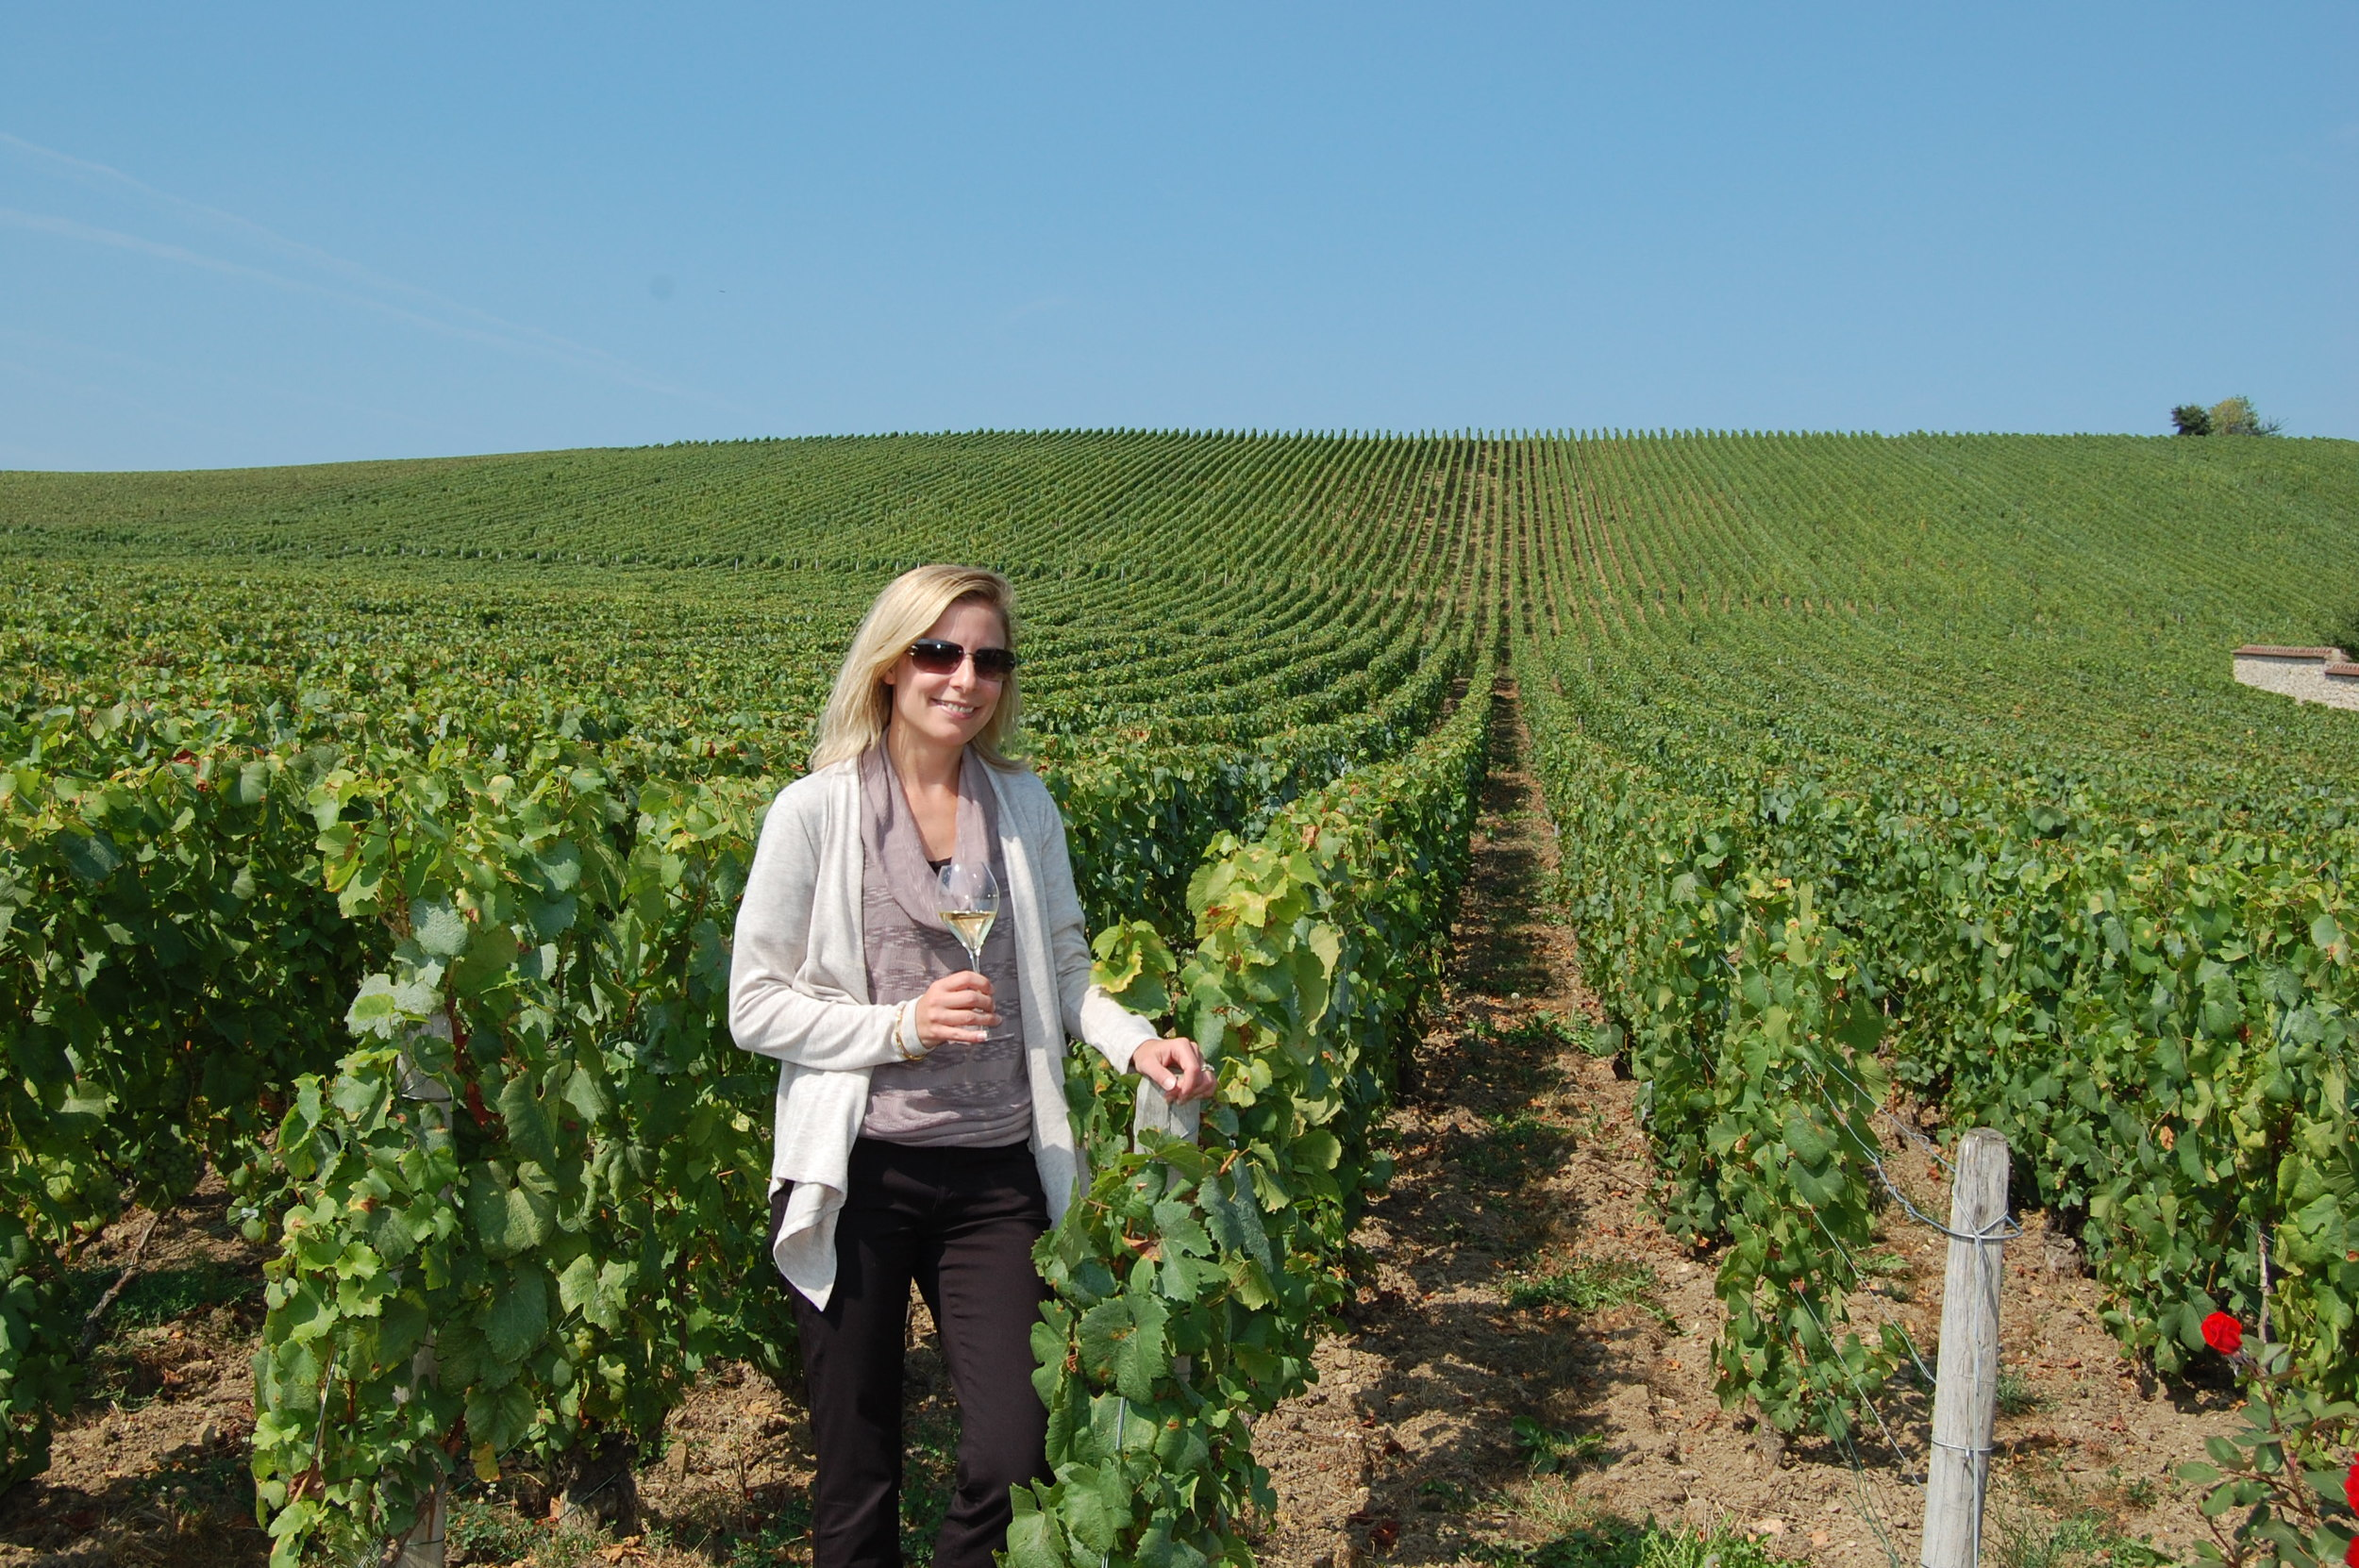 Sipping Comtes de Champagne in the Vineyards at Taittinger.